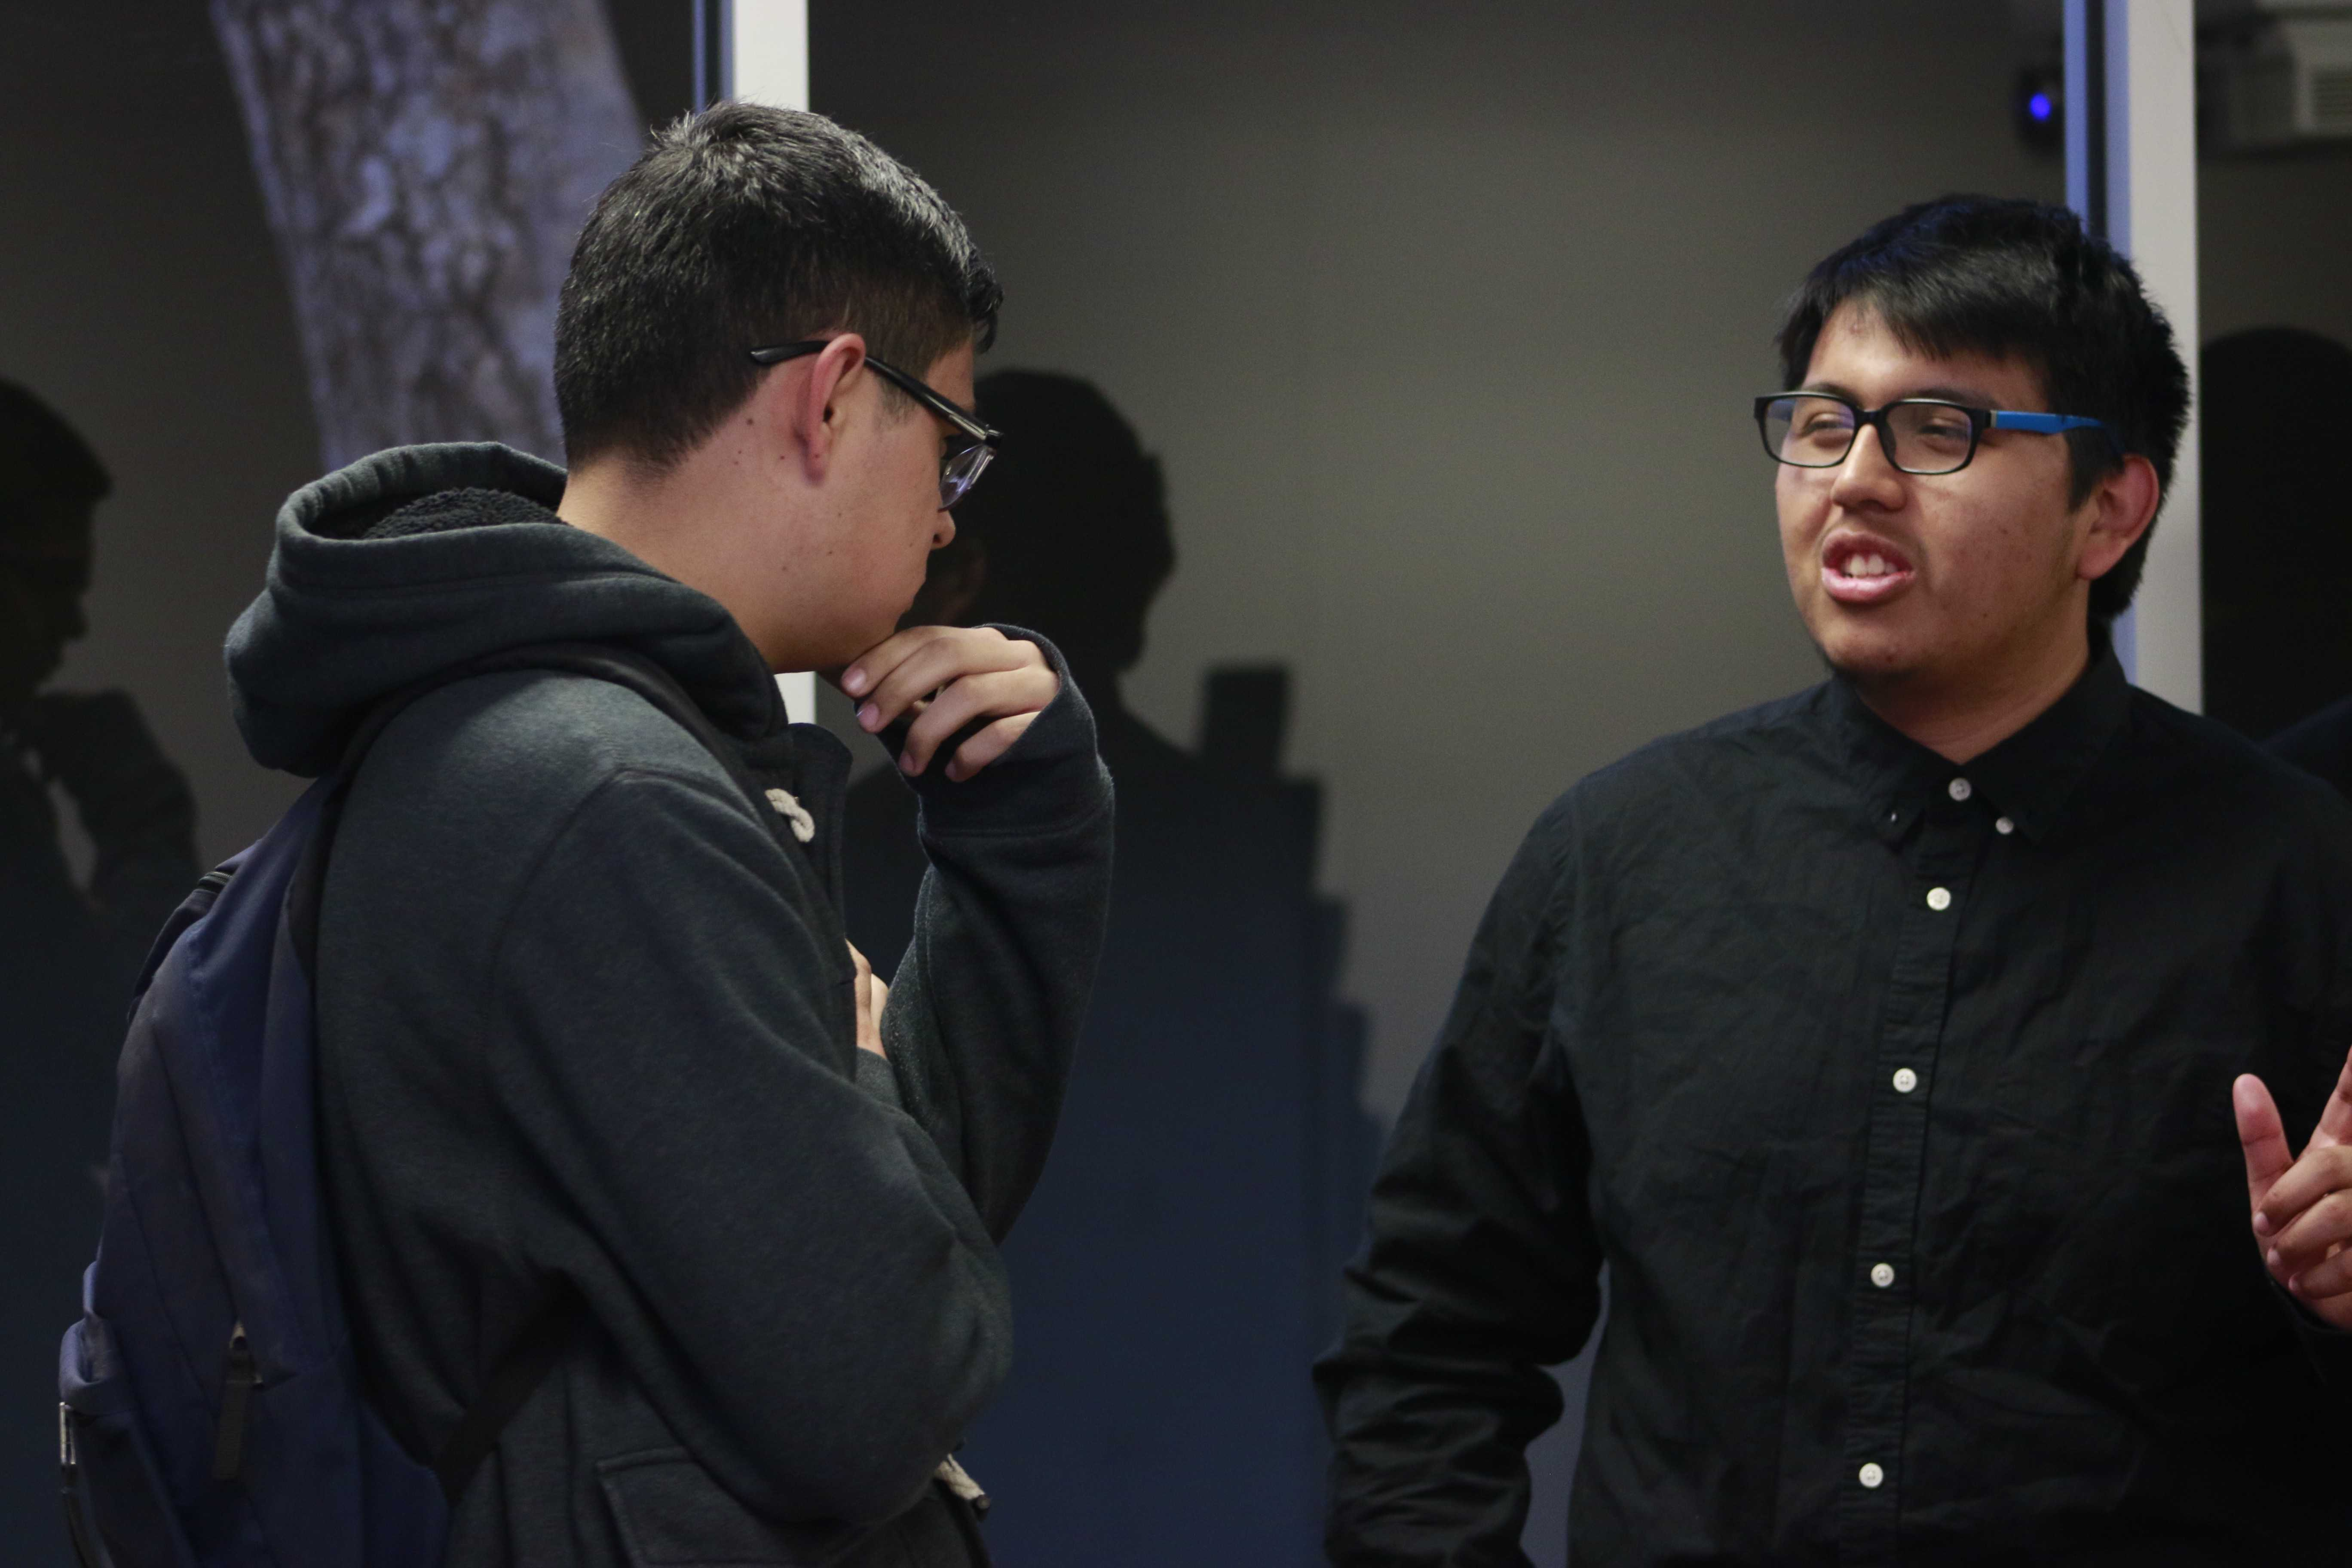 Miguel Guerrero, 18, an Electrical Engineering major (right) and Jeremy Perez (left), 20, an Computer Engineering major, conversing before an event held by the Society of Hispanic Professional Engineers.  Guerrero said afterwards that it was good to see